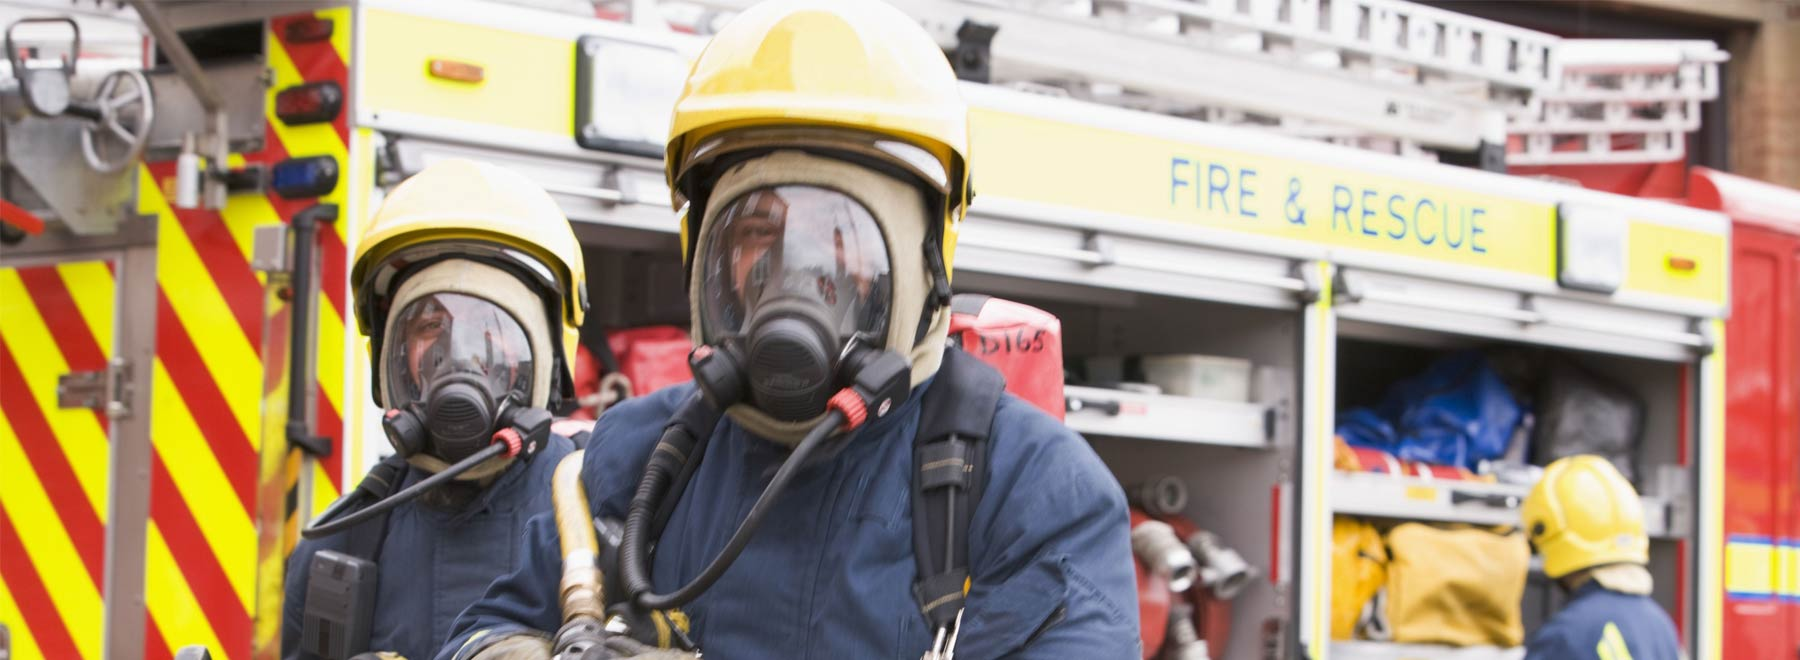 How much will I earn in the emergency services?